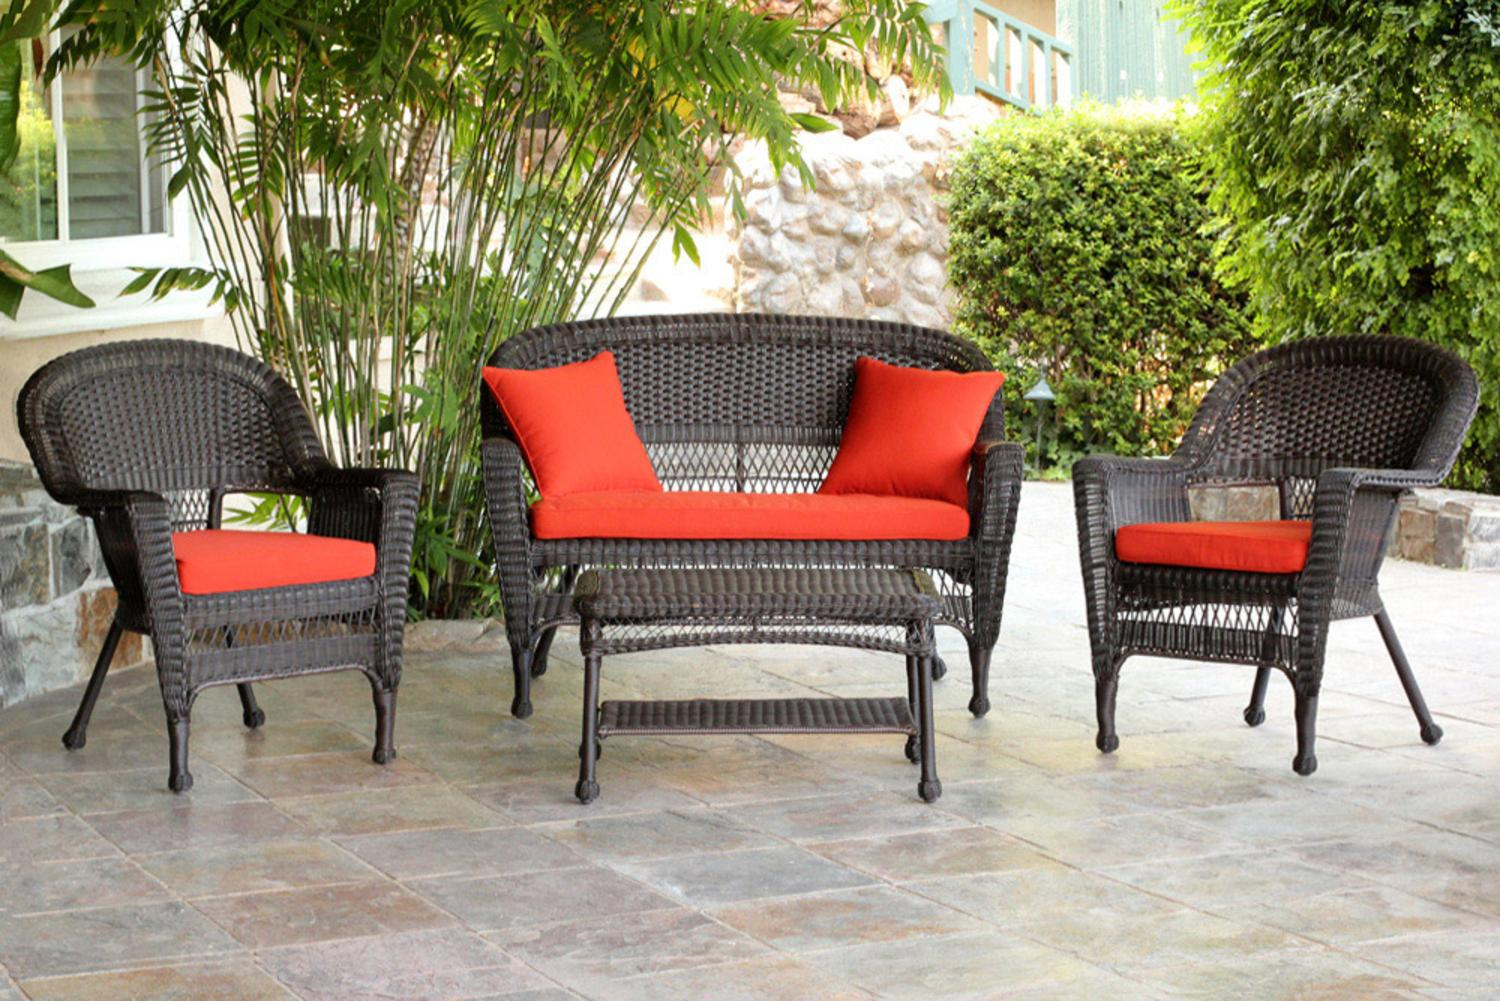 4-Piece Espresso Wicker Patio Chairs, Loveseat & Table Furniture Set Red Cushions by CC Outdoor Living